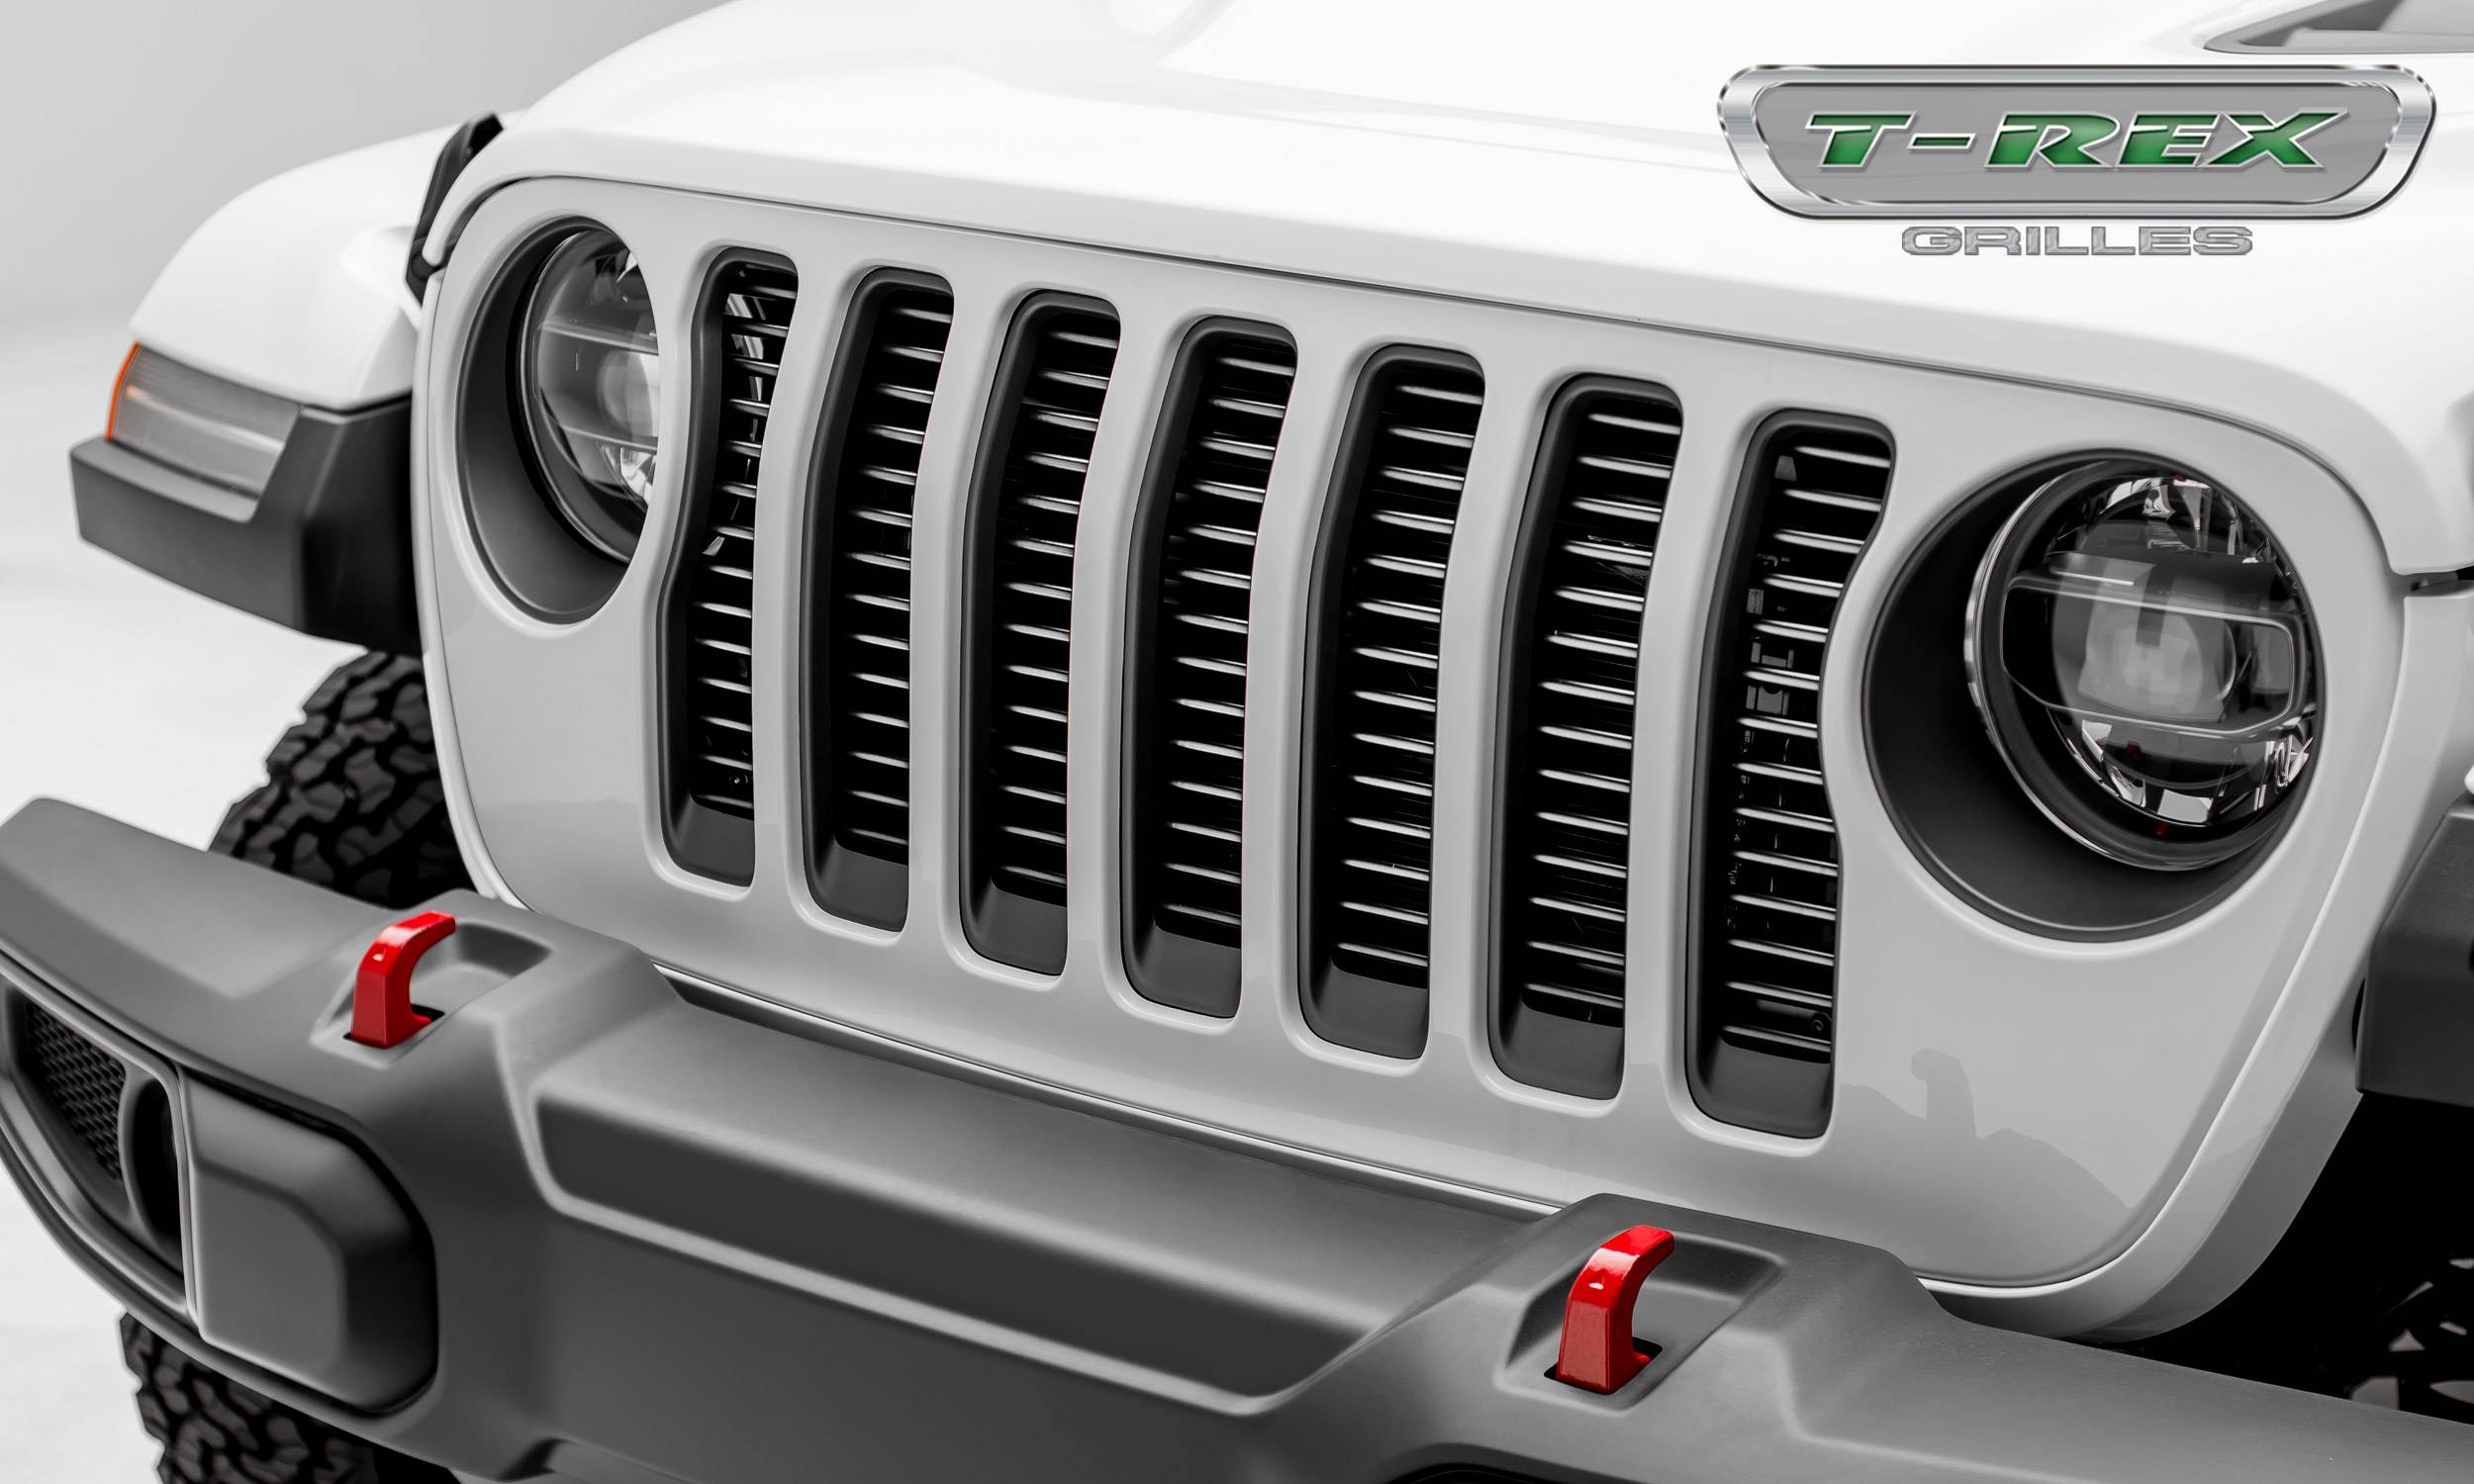 "T-REX Grilles - Jeep Wrangler JL - Billet Series -  3/8"" Thick Round Billet Stock - Insert Bolts-On Behind Factory Grille -  Silver Powder Coat Finish - Pt # 6204946"